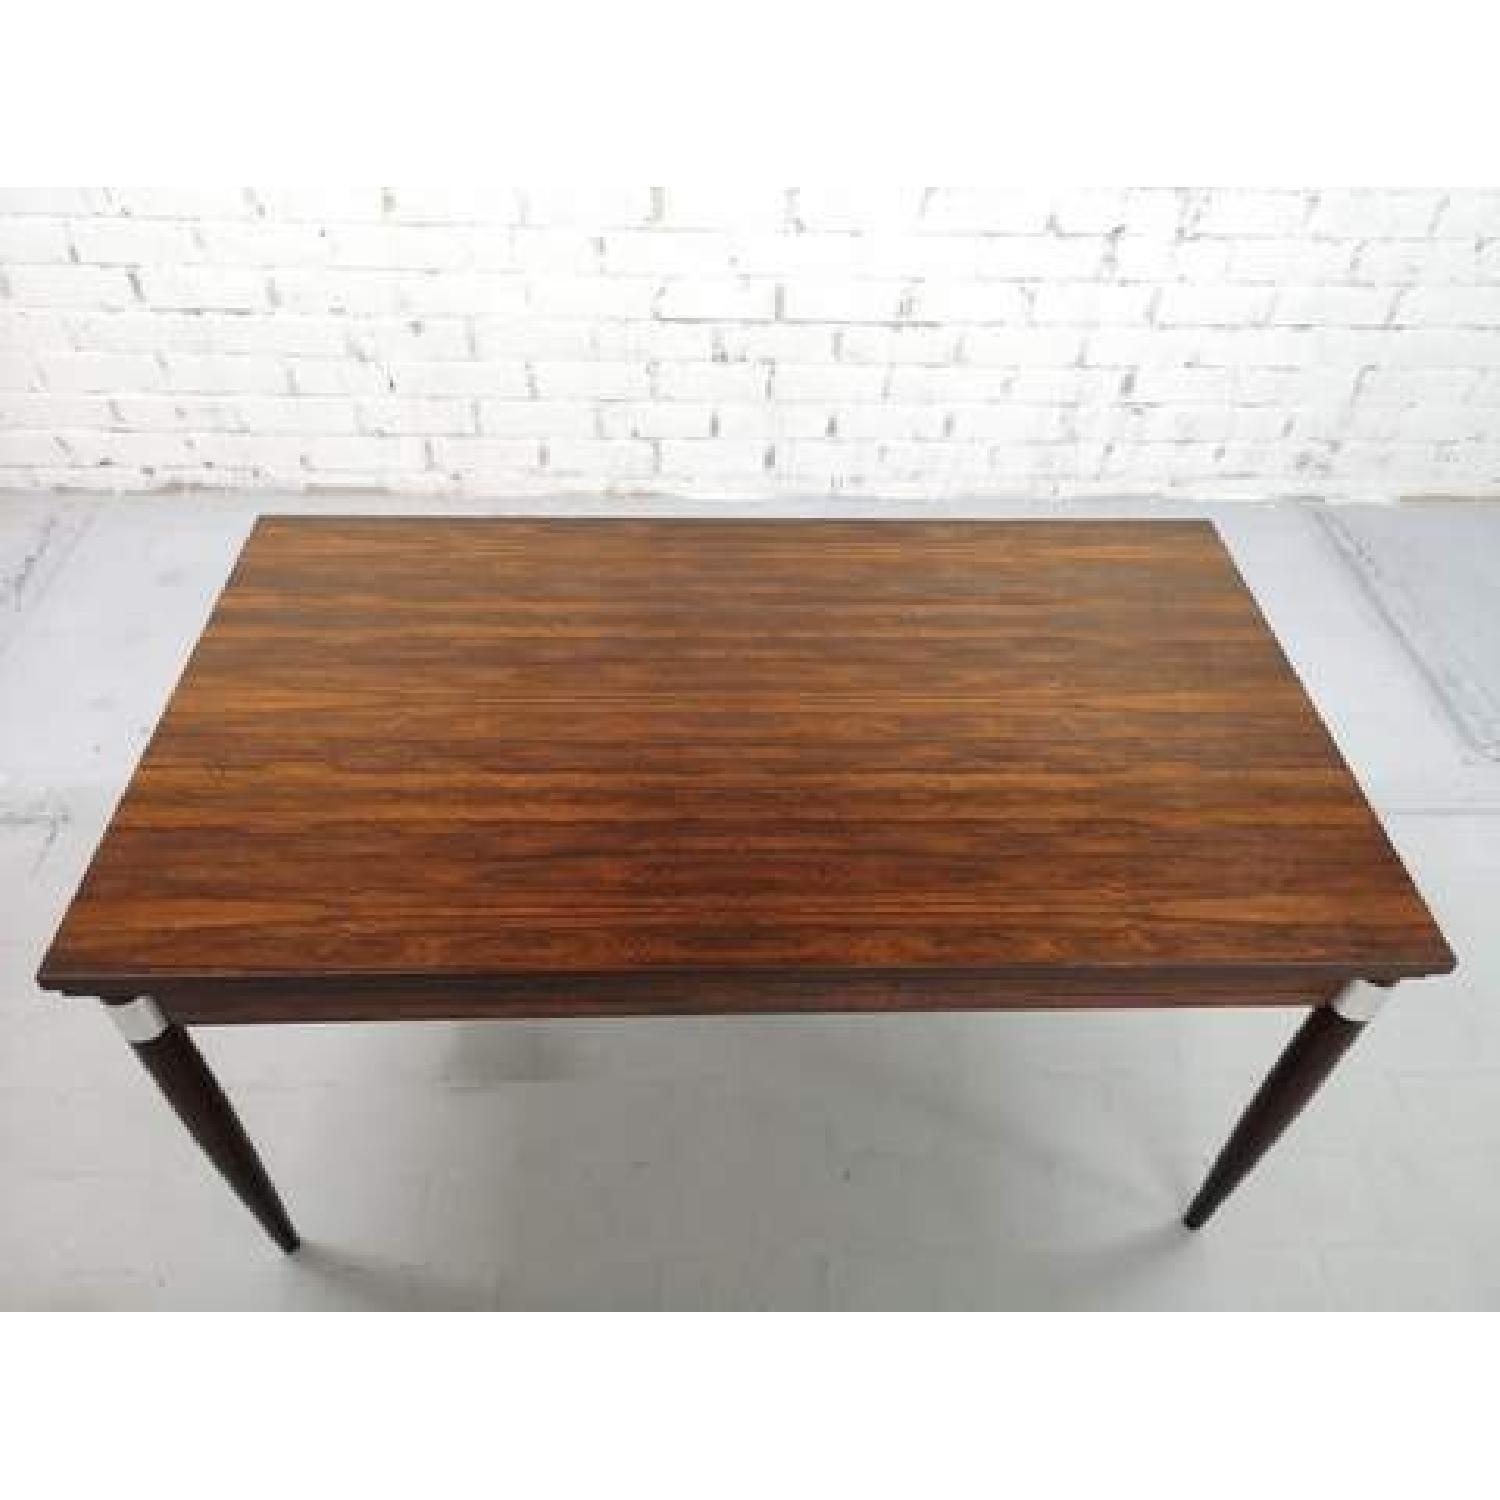 Mid-Century Modern Design Extendable Draw Leaf Dining Table - image-11